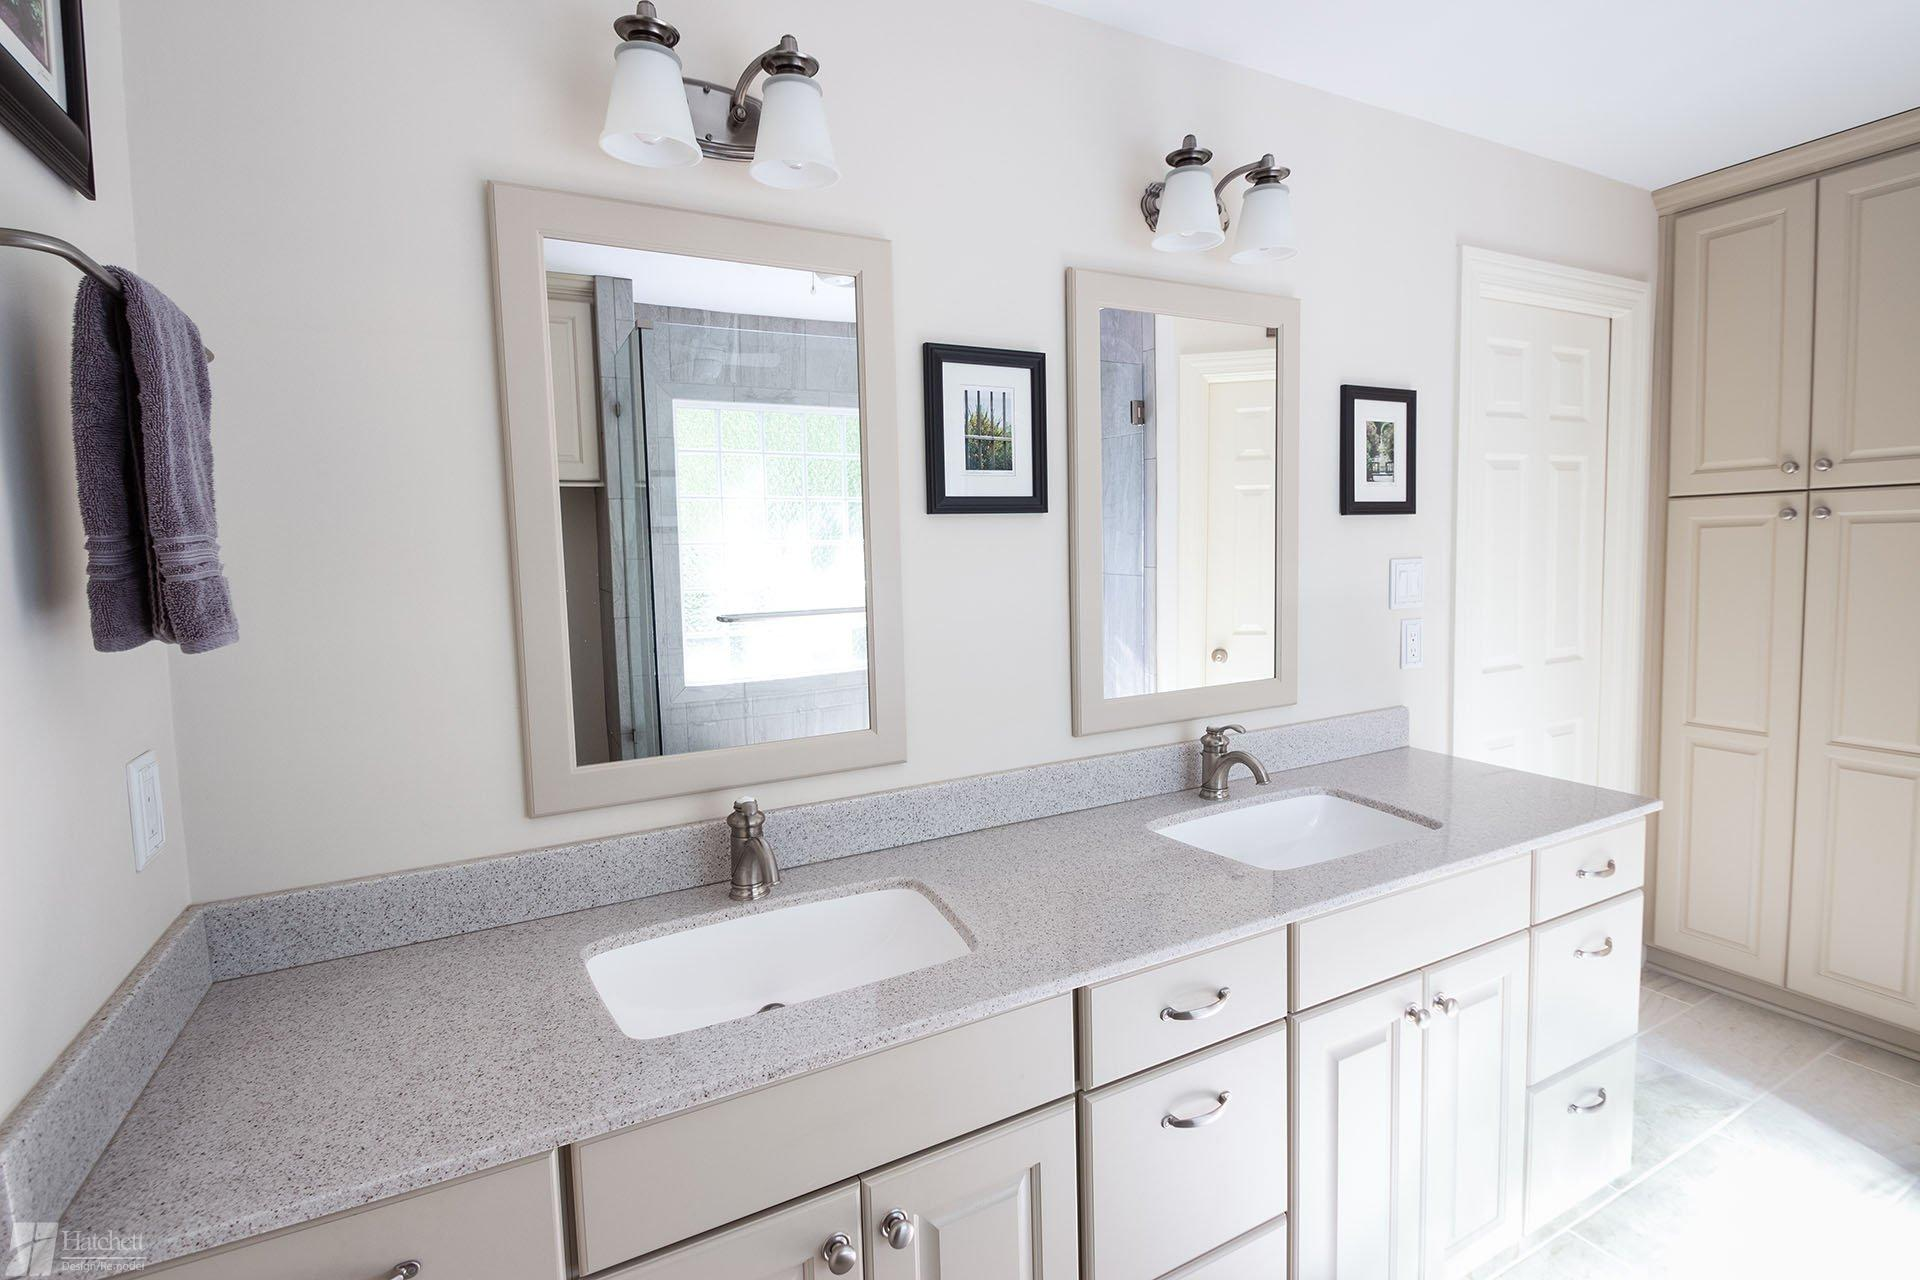 Zinskie Bathroom Remodel Hatchett Design Remodel